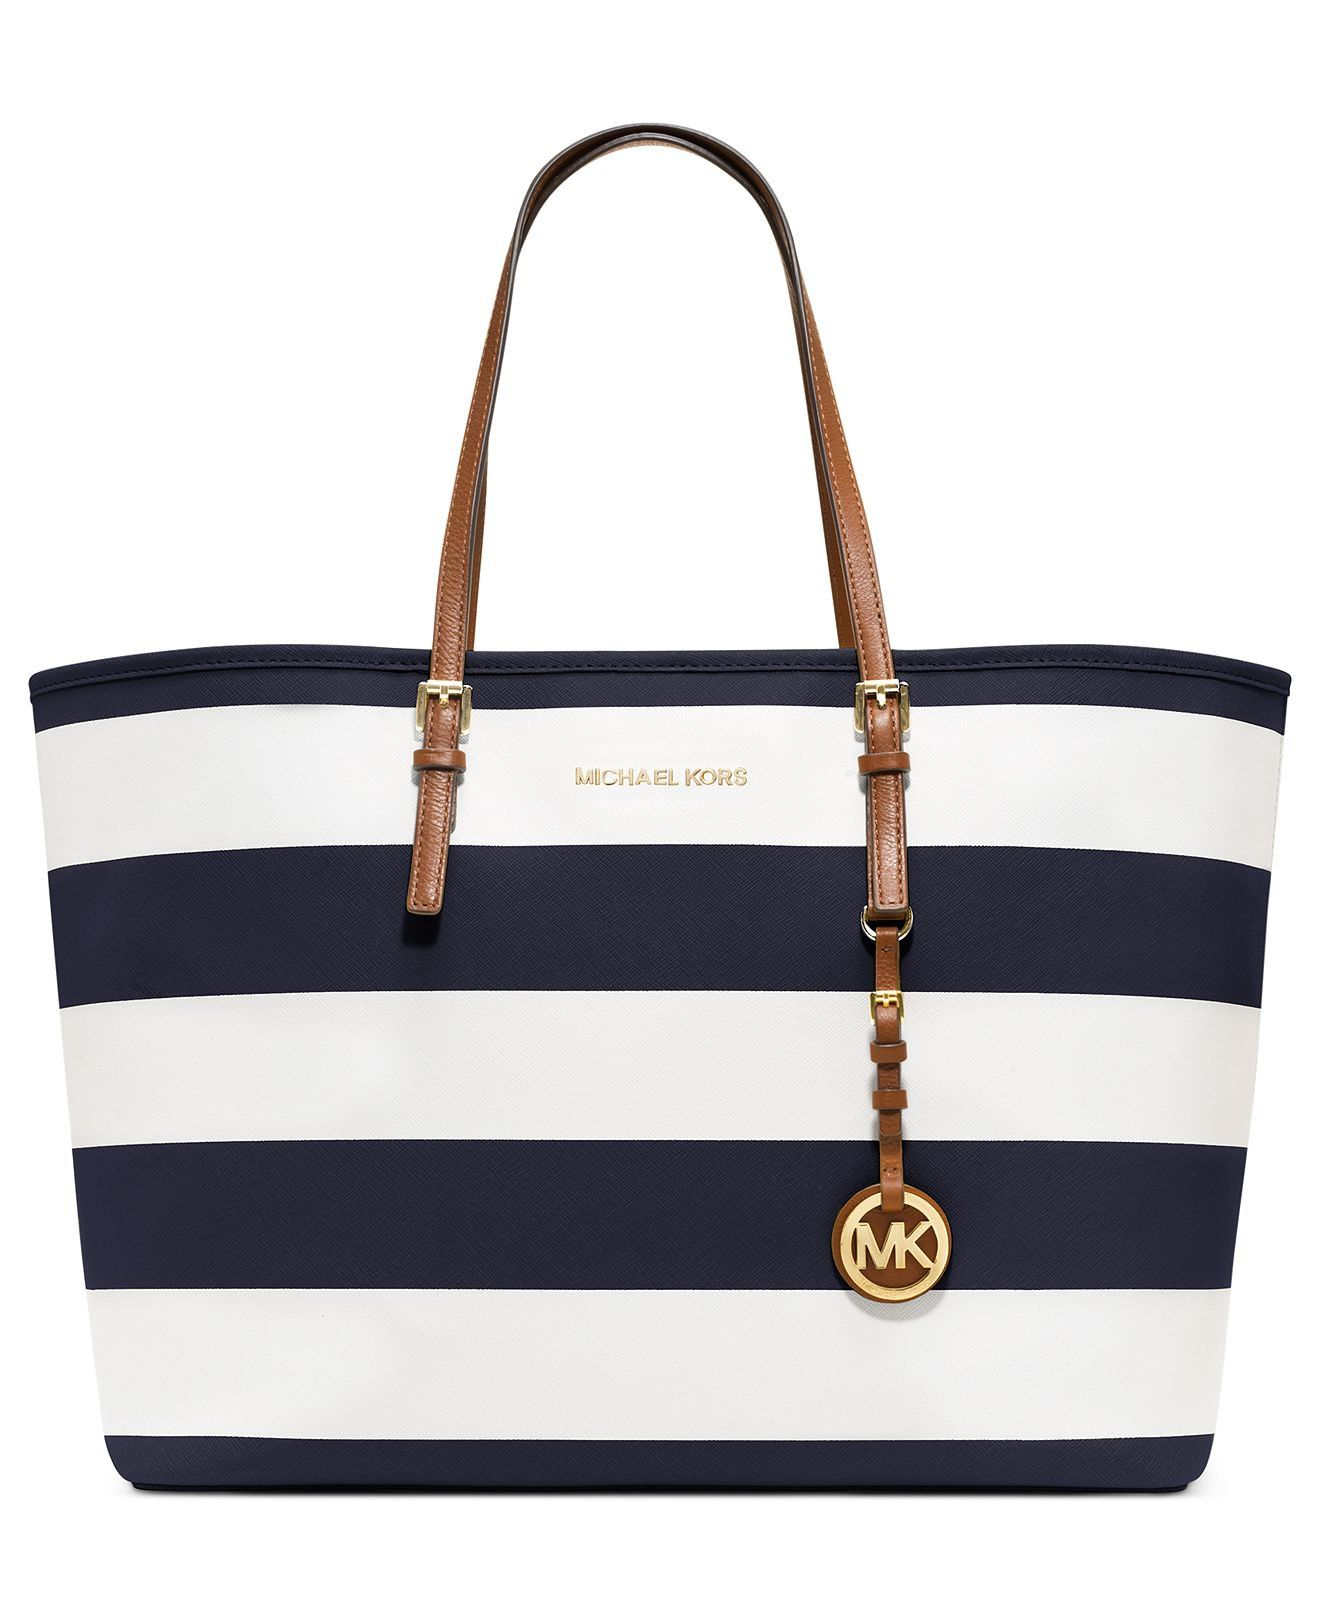 ecd5e98d9495 Michael Kors Tote - Miranda Small with Grommets